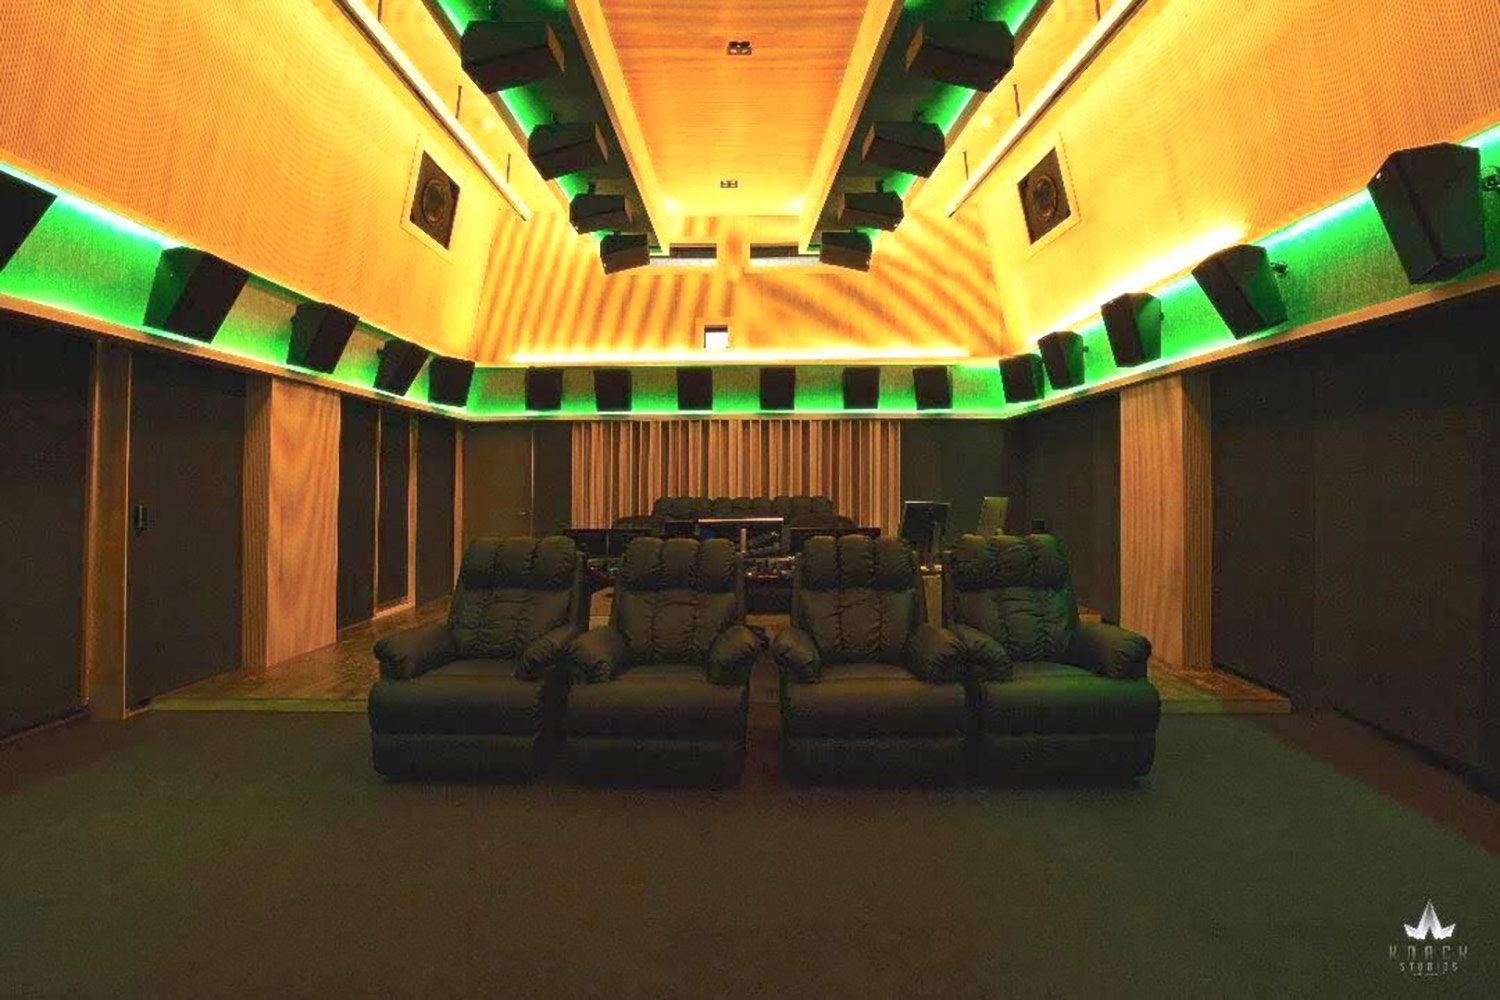 Envisioned as a major resource for India's thriving Bollywood film industry, KNACK Studios is the first world-class post-production complex in Eastern India.  To provide clients with the ultimate facility design, the KNACK executive group retained global architectural/acoustic consultants, WSDG Walters-Storyk Design Group. Control Room 2 with Dolby Atmos, back view.